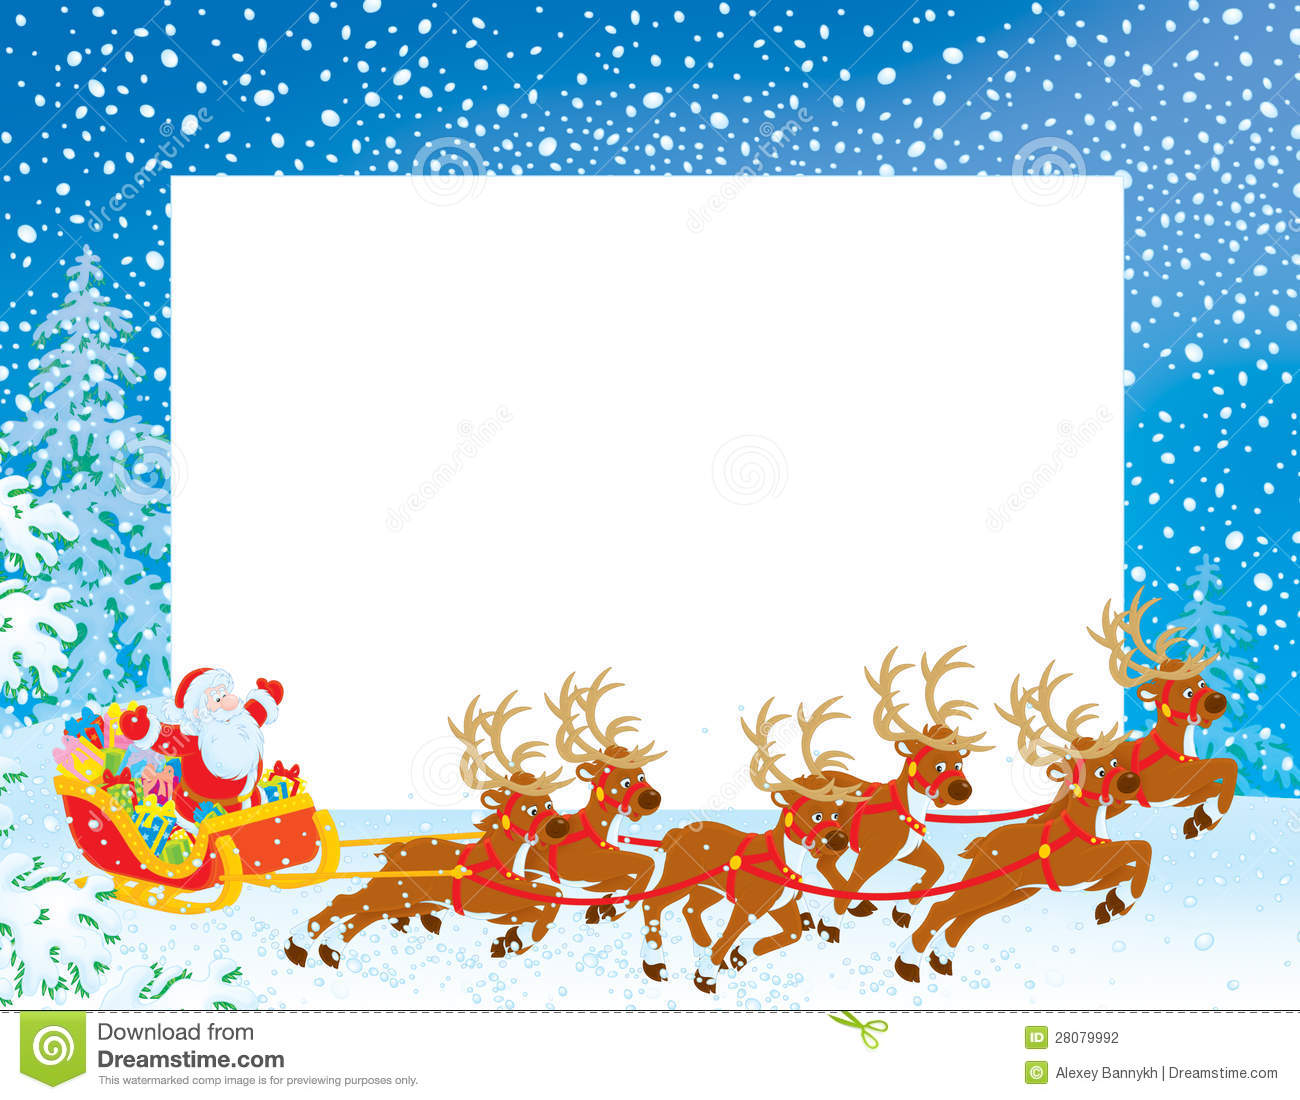 Christmas Sleigh With Santa Border With Sleigh Of Santa